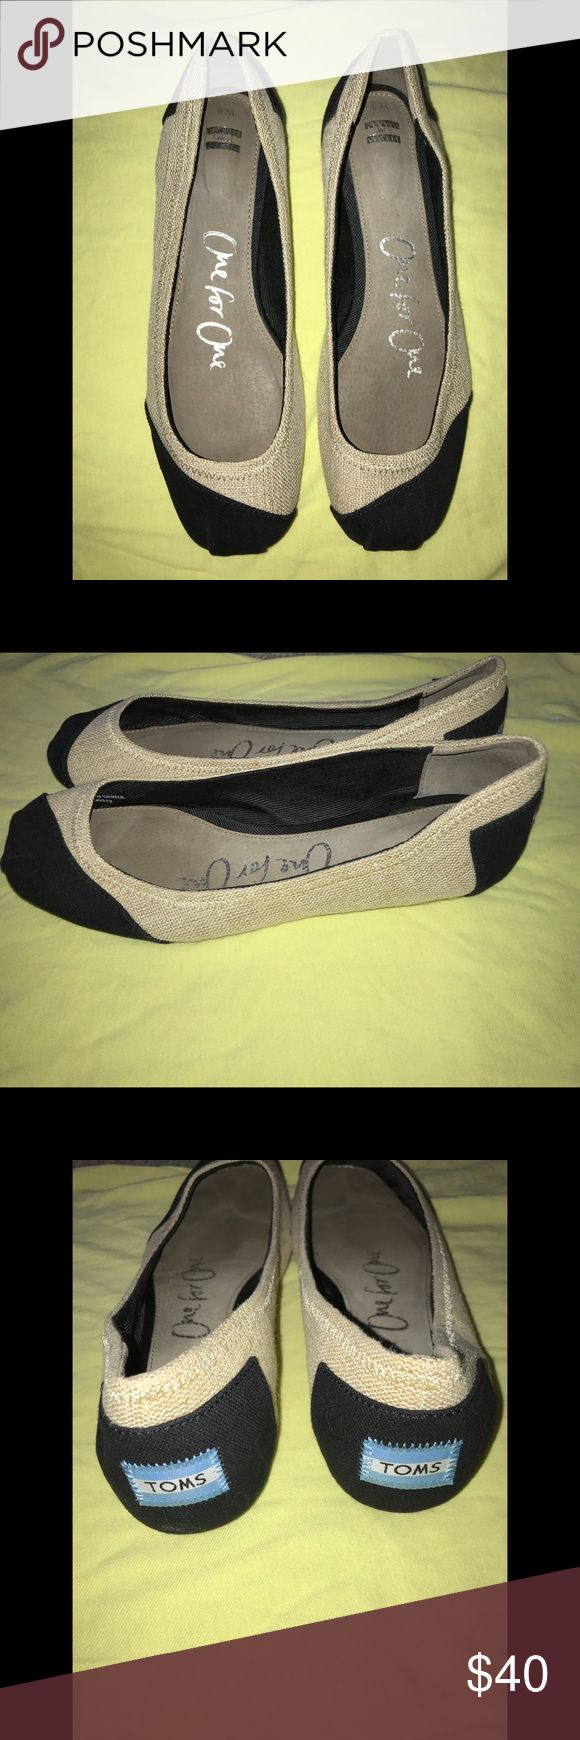 • NWOT Khaki & Black TOMS Ballet Flats size 8 • • Worn once, were too small, great condition, absolutely nothing wrong with them, padded/cushion soul, clean, smoke free home. • Toms Shoes Flats & Loafers